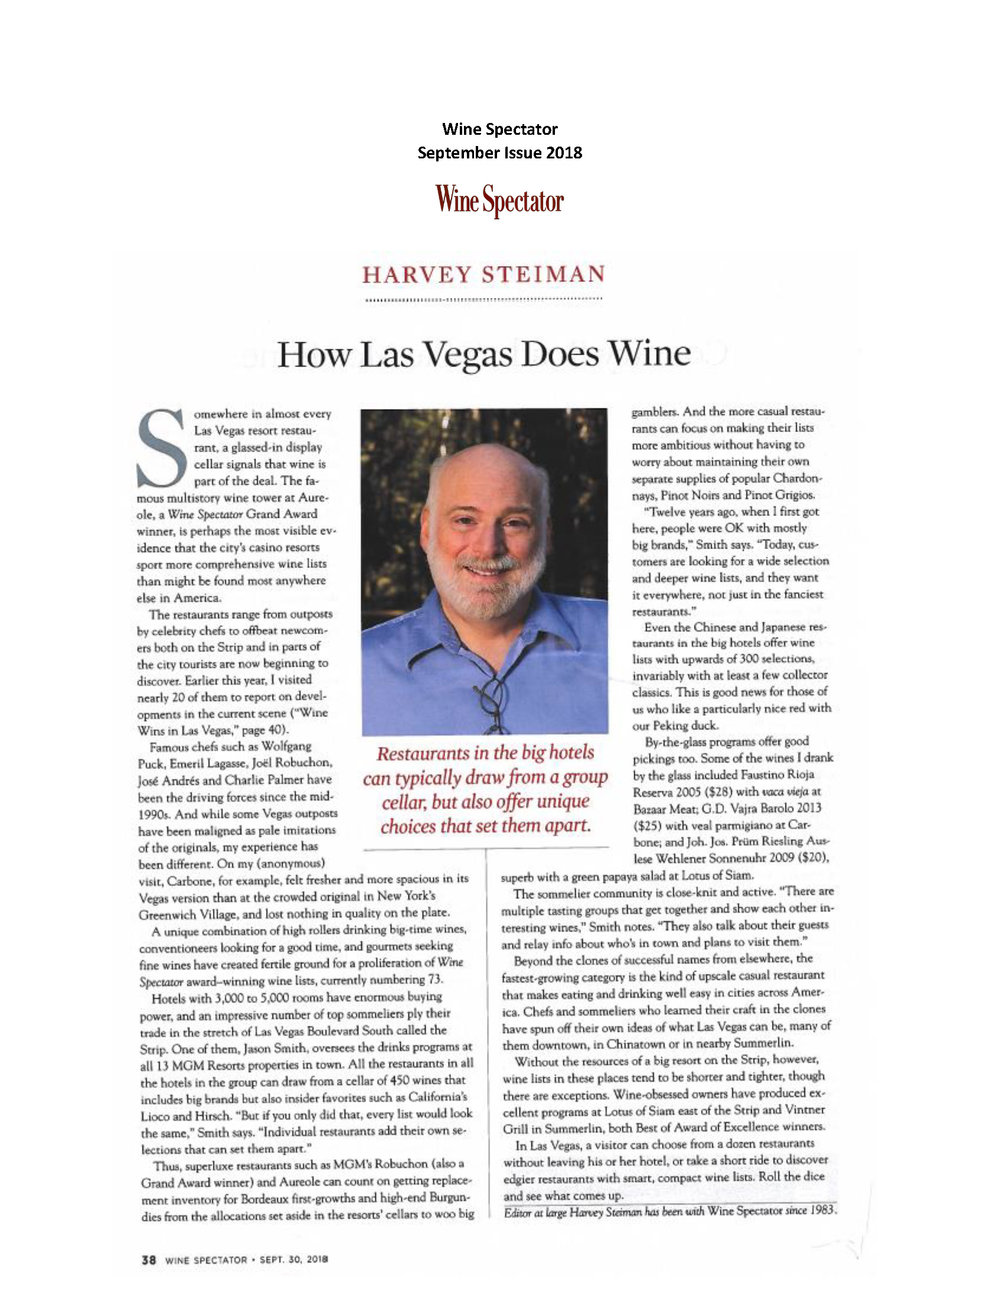 Wine Spectator_Wine Wins in Las Vegas_ September 2018_Page_1.jpg